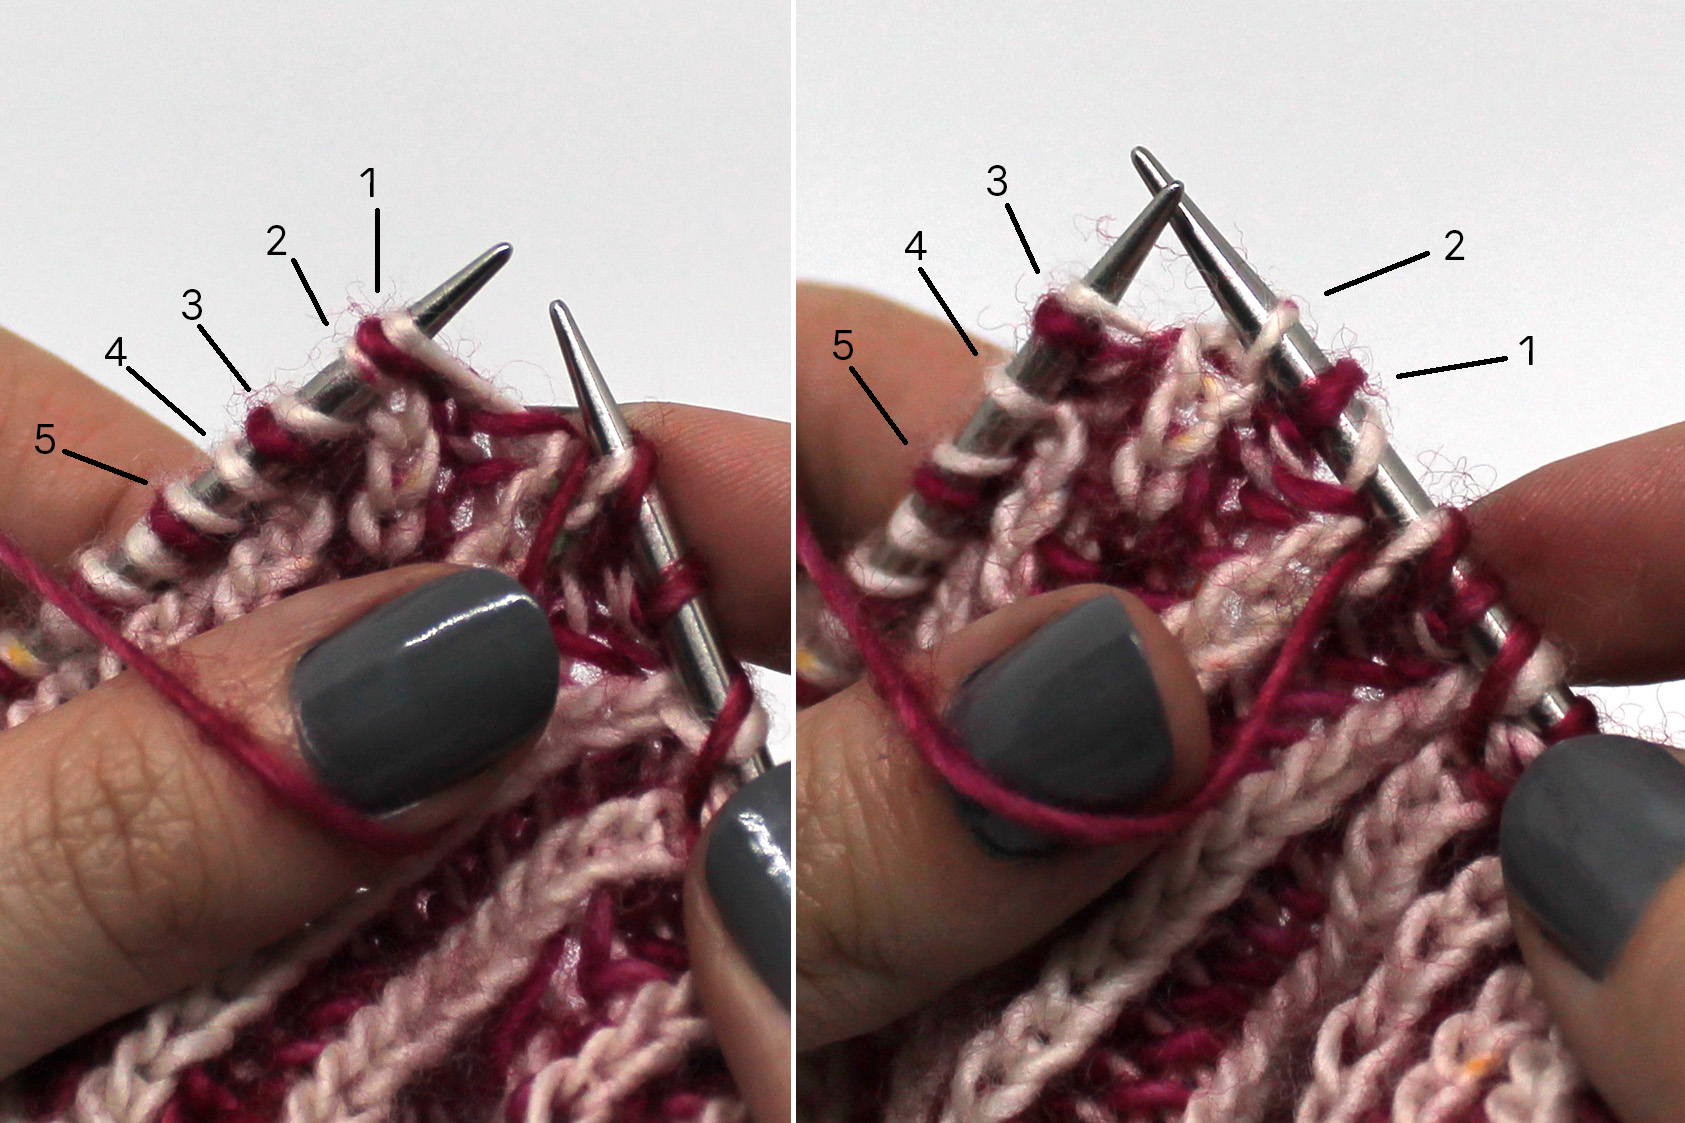 Two images. Left image: Five stitches labelled 1 - 5. Right Image: Stitch 1 and 2 have been slipped to the right hand needle, stitches 3, 4 and 5 are on the left hand needle.